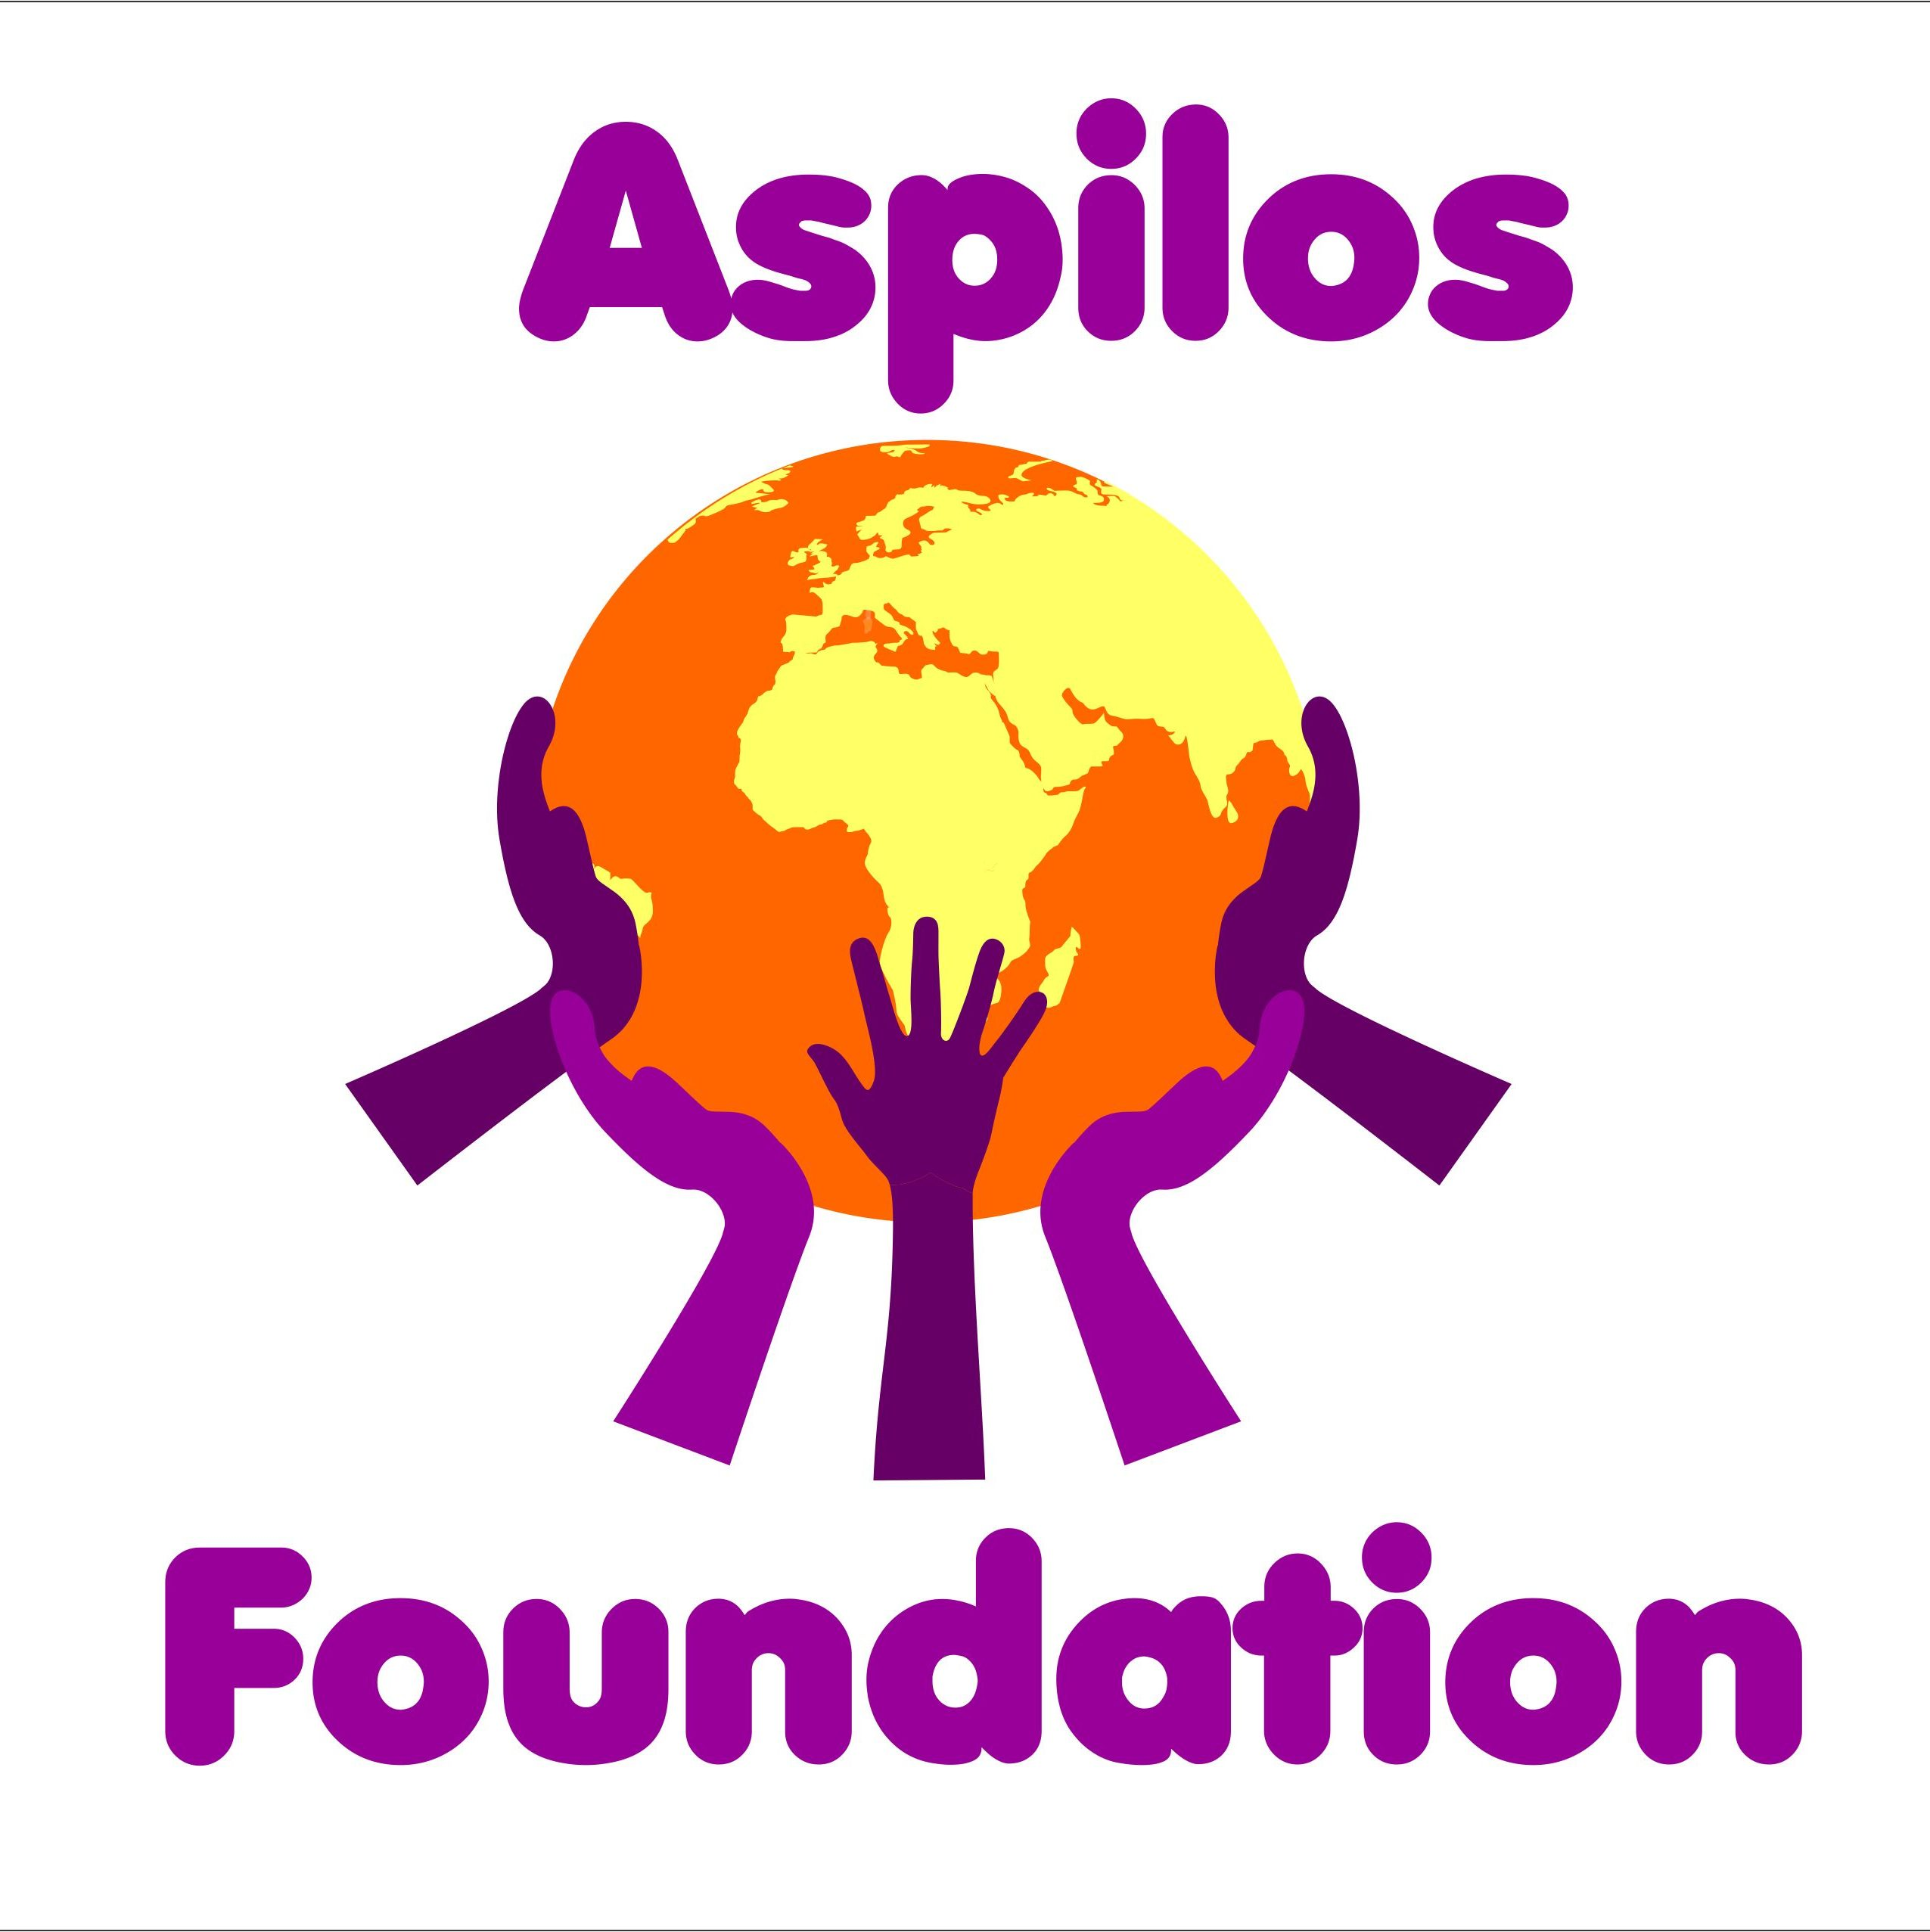 Aspilos Foundation